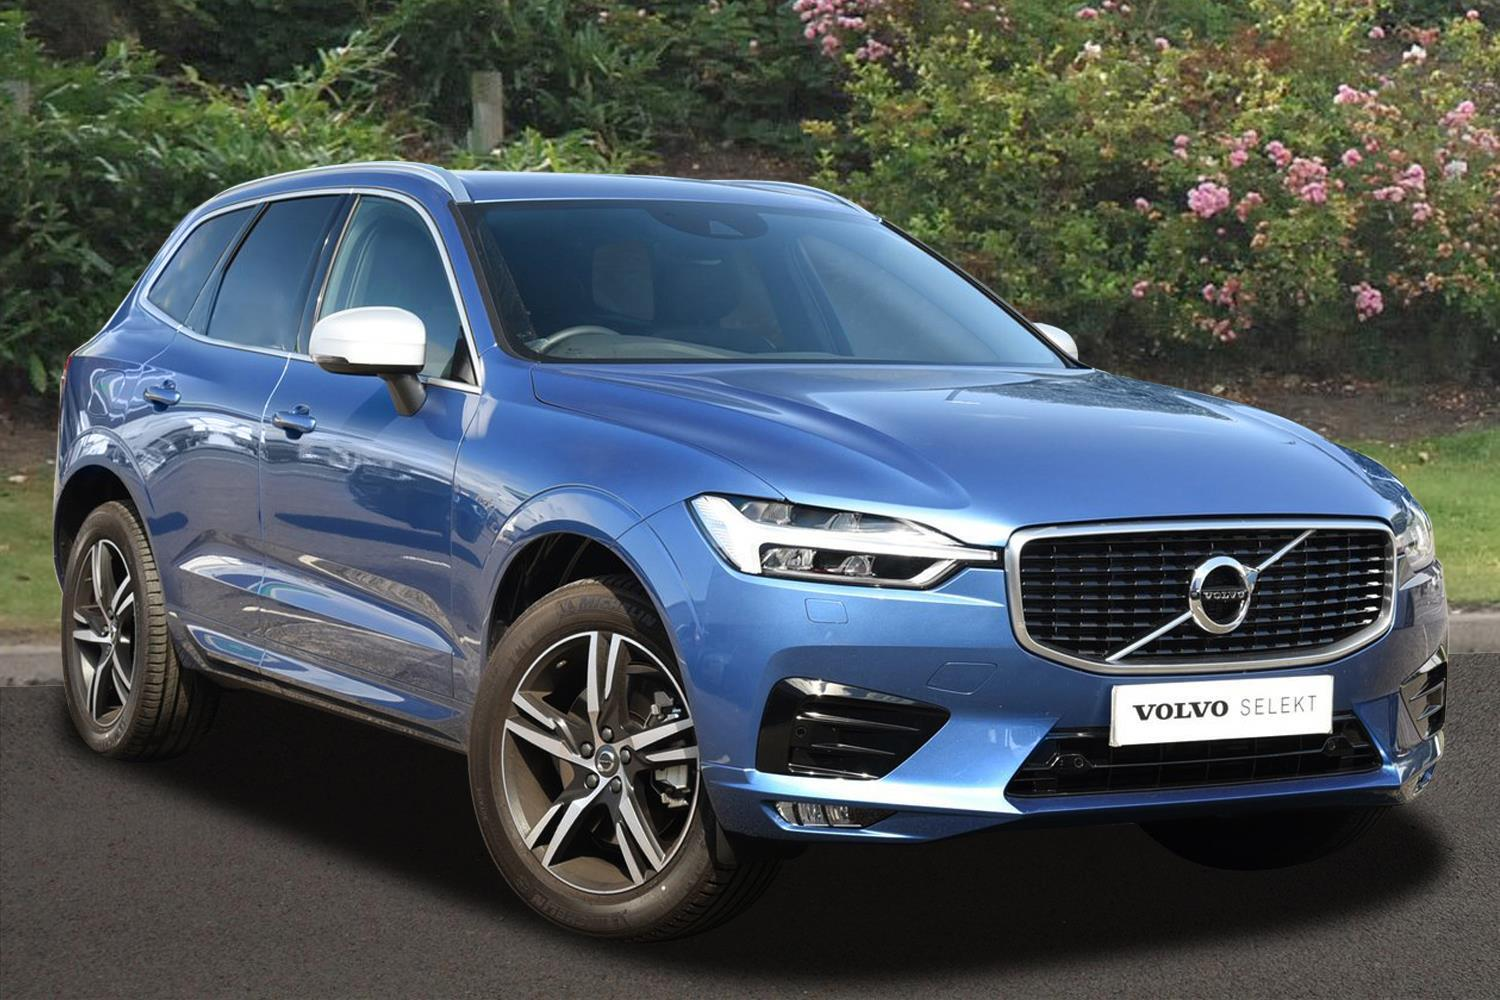 Used Volvo Xc60 2.0 D4 R Design 5Dr Awd Geartronic Diesel Estate for Sale | Bristol Street Motors